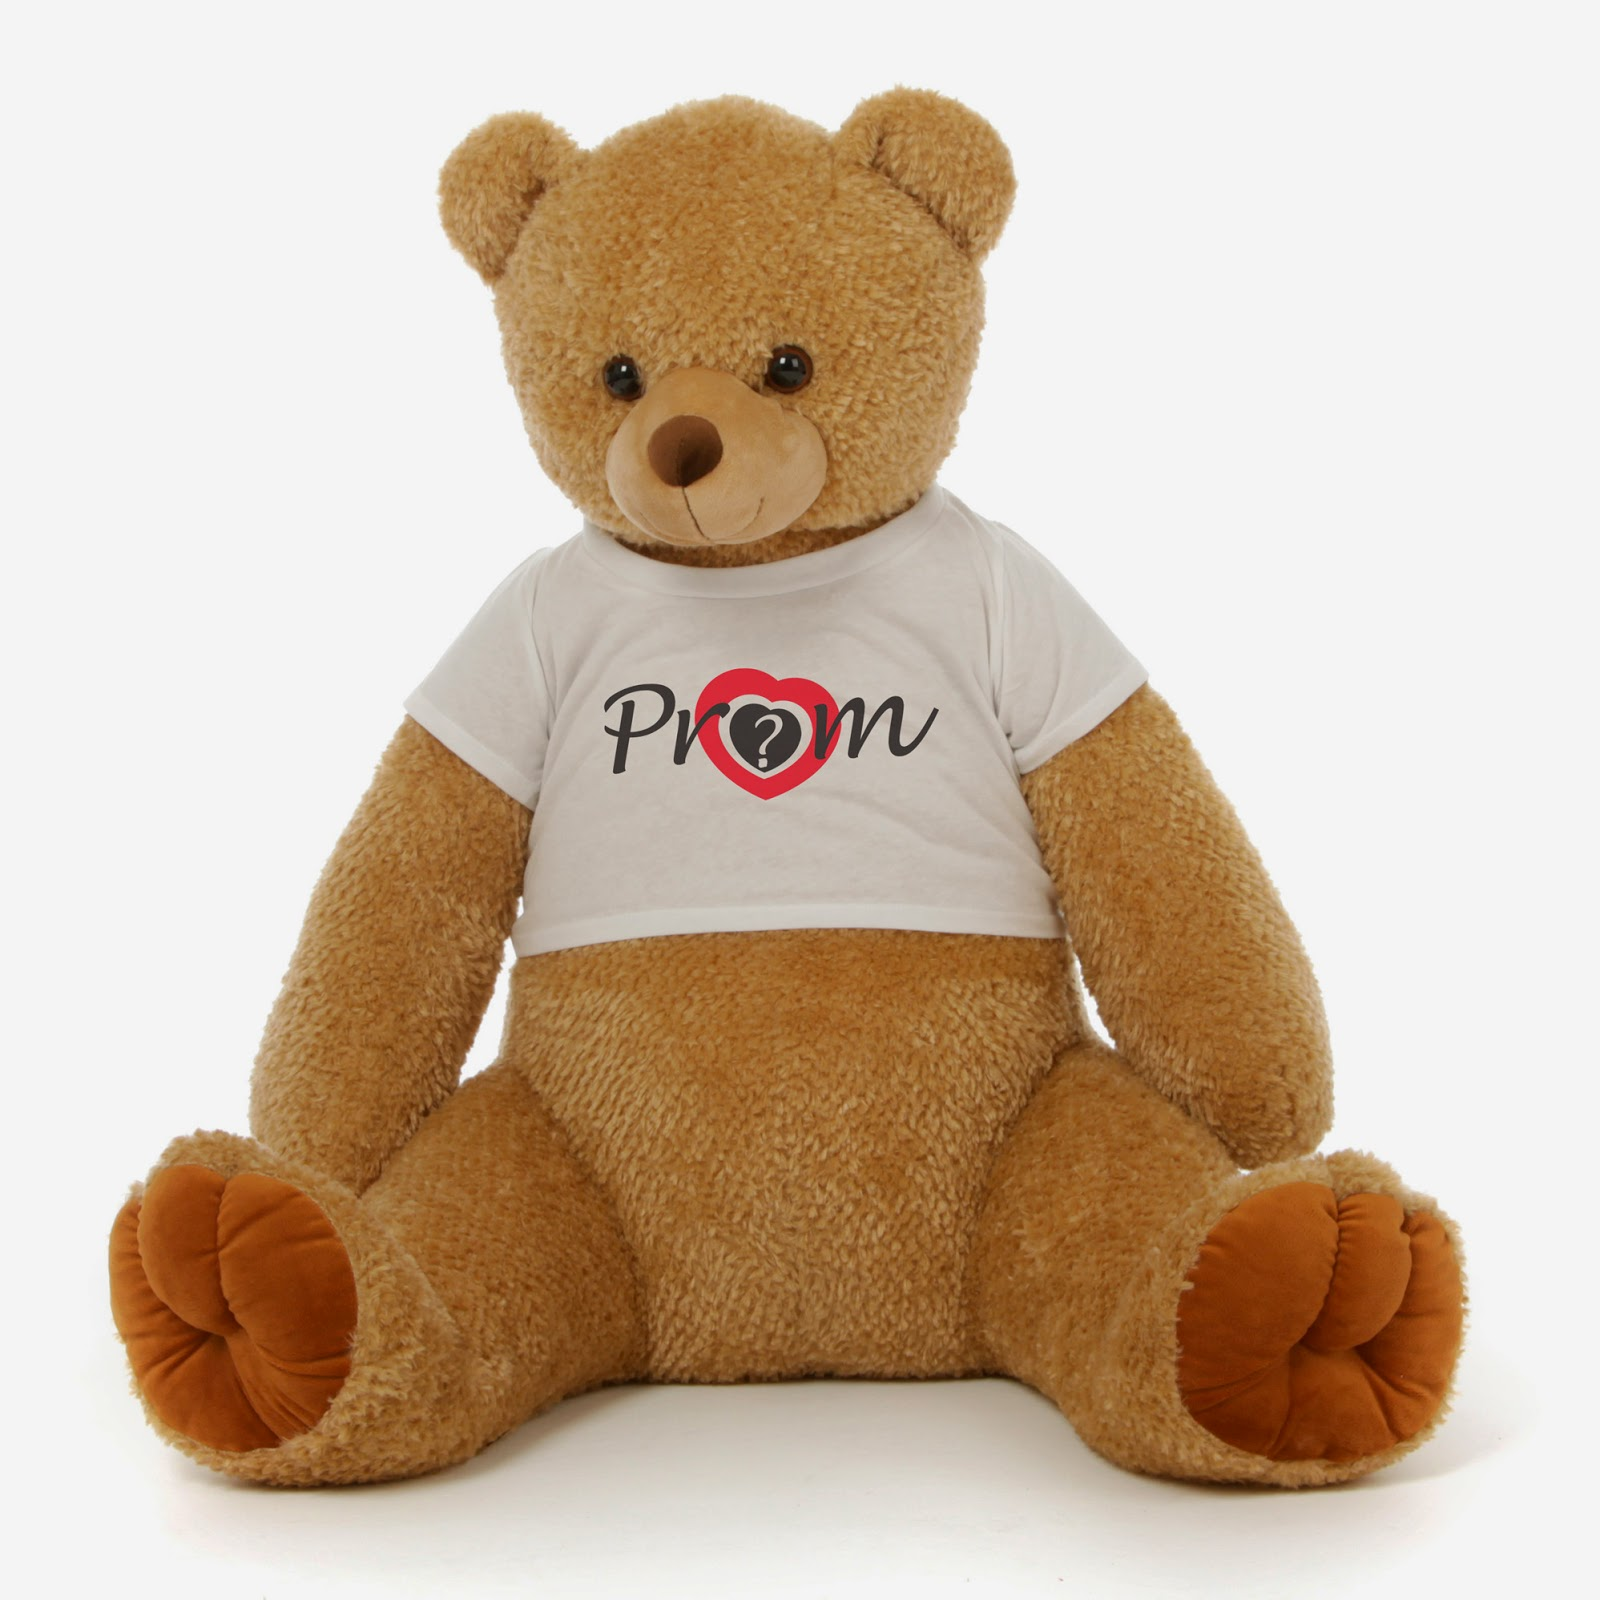 Dating sites for teddy bears